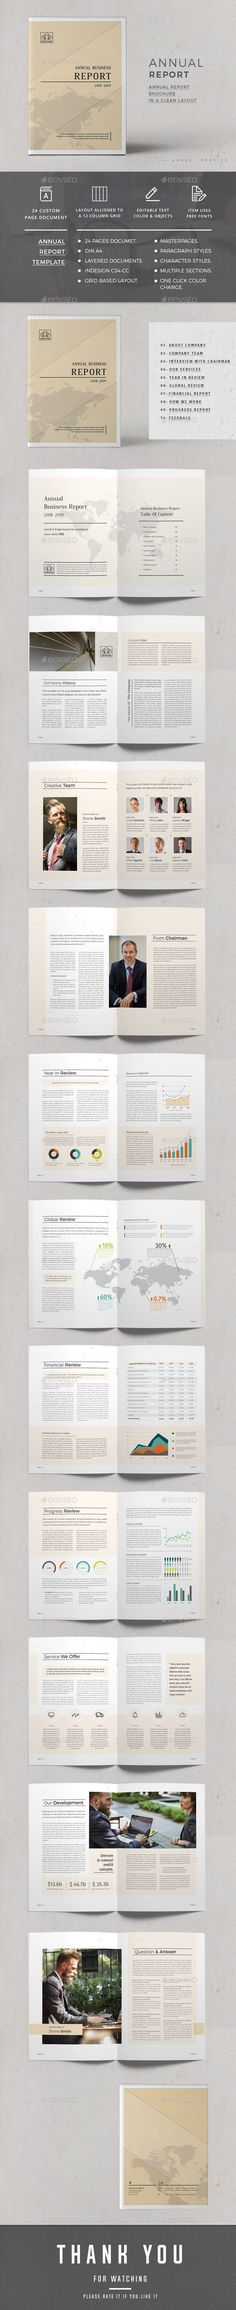 #Annual Report - #Corporate #Brochures Download here: https://graphicriver.net/item/annual-report/20336161?ref=alena994 #FinanceBrochure